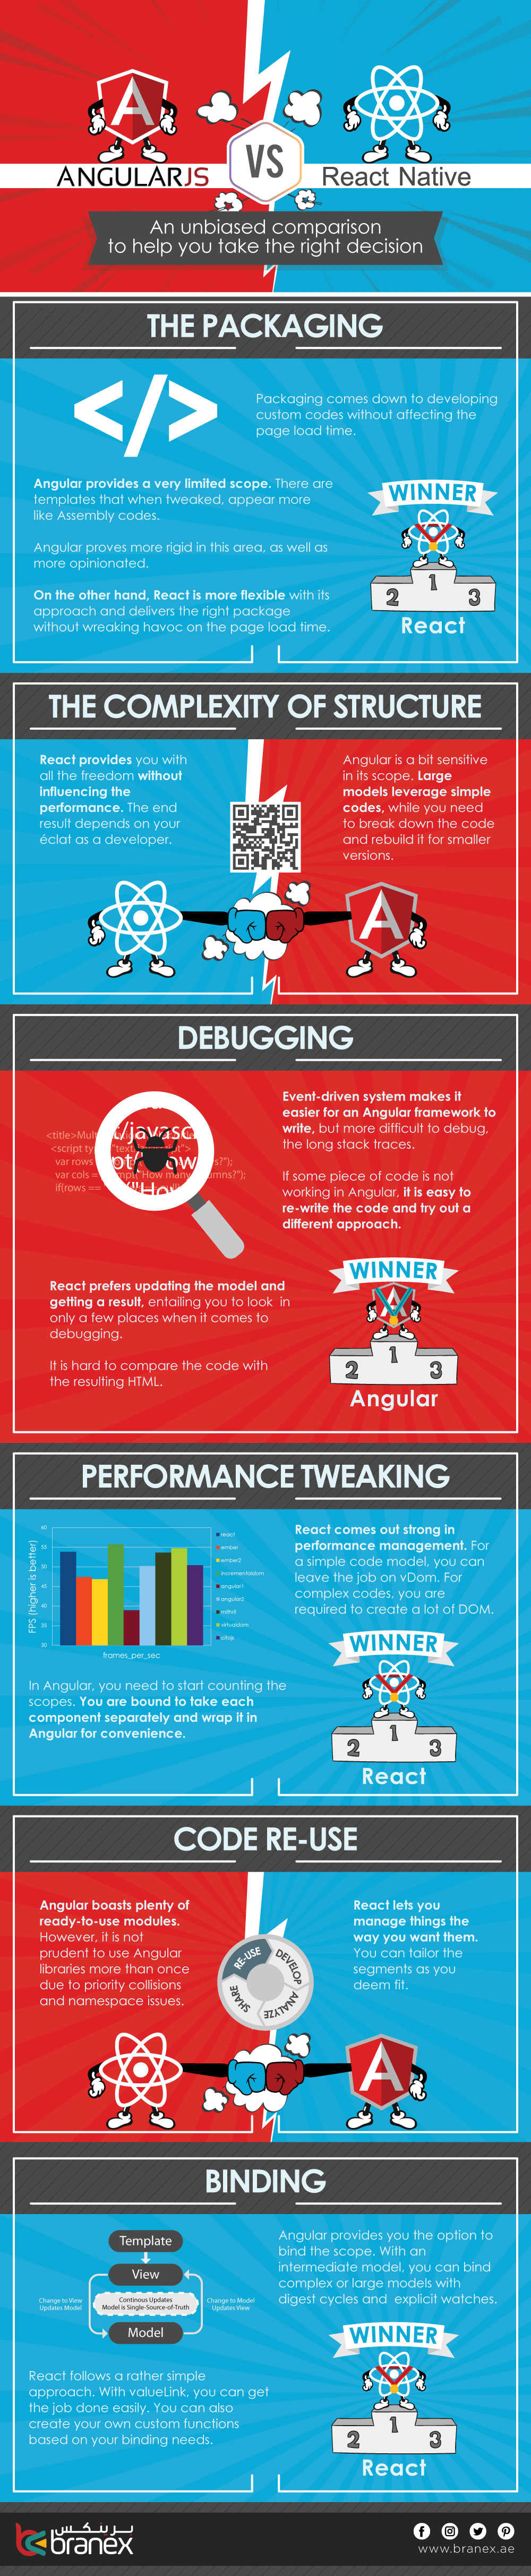 reactjs-vs-angularjs - Infographic